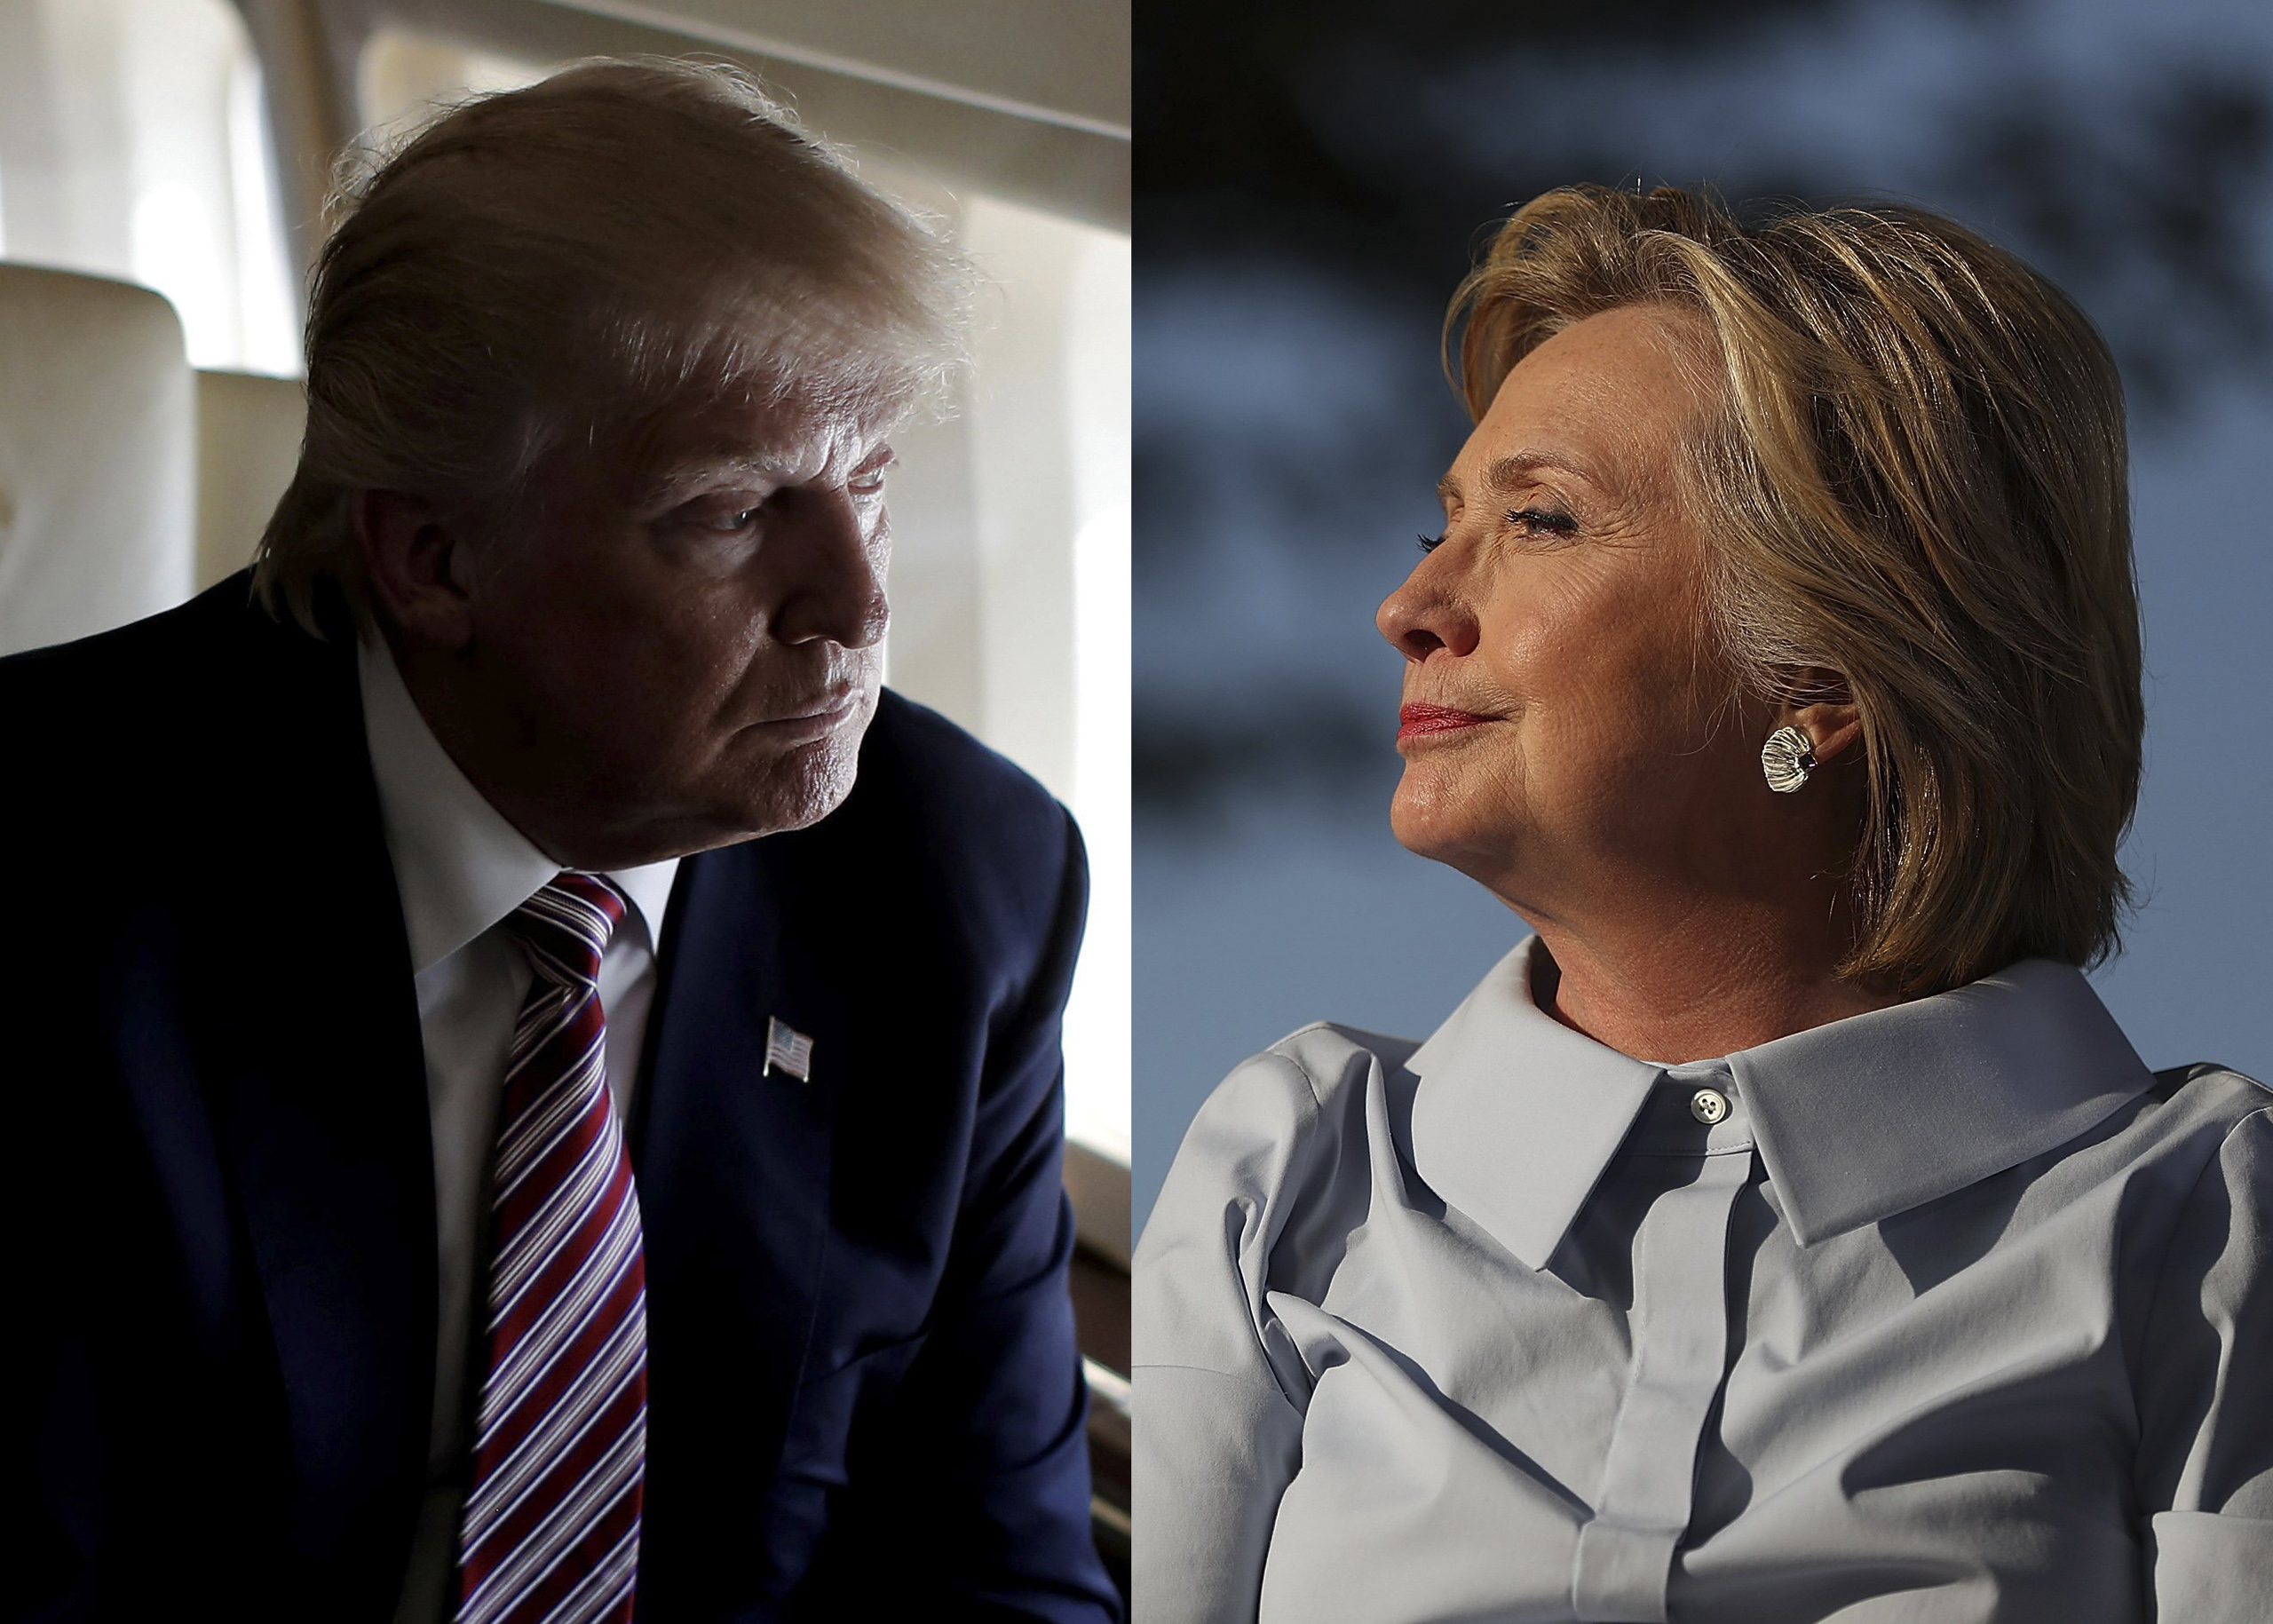 Republican Presidential Nominee Donald Trump, left and Democratic Presidential Nominee Hillary Clinton.